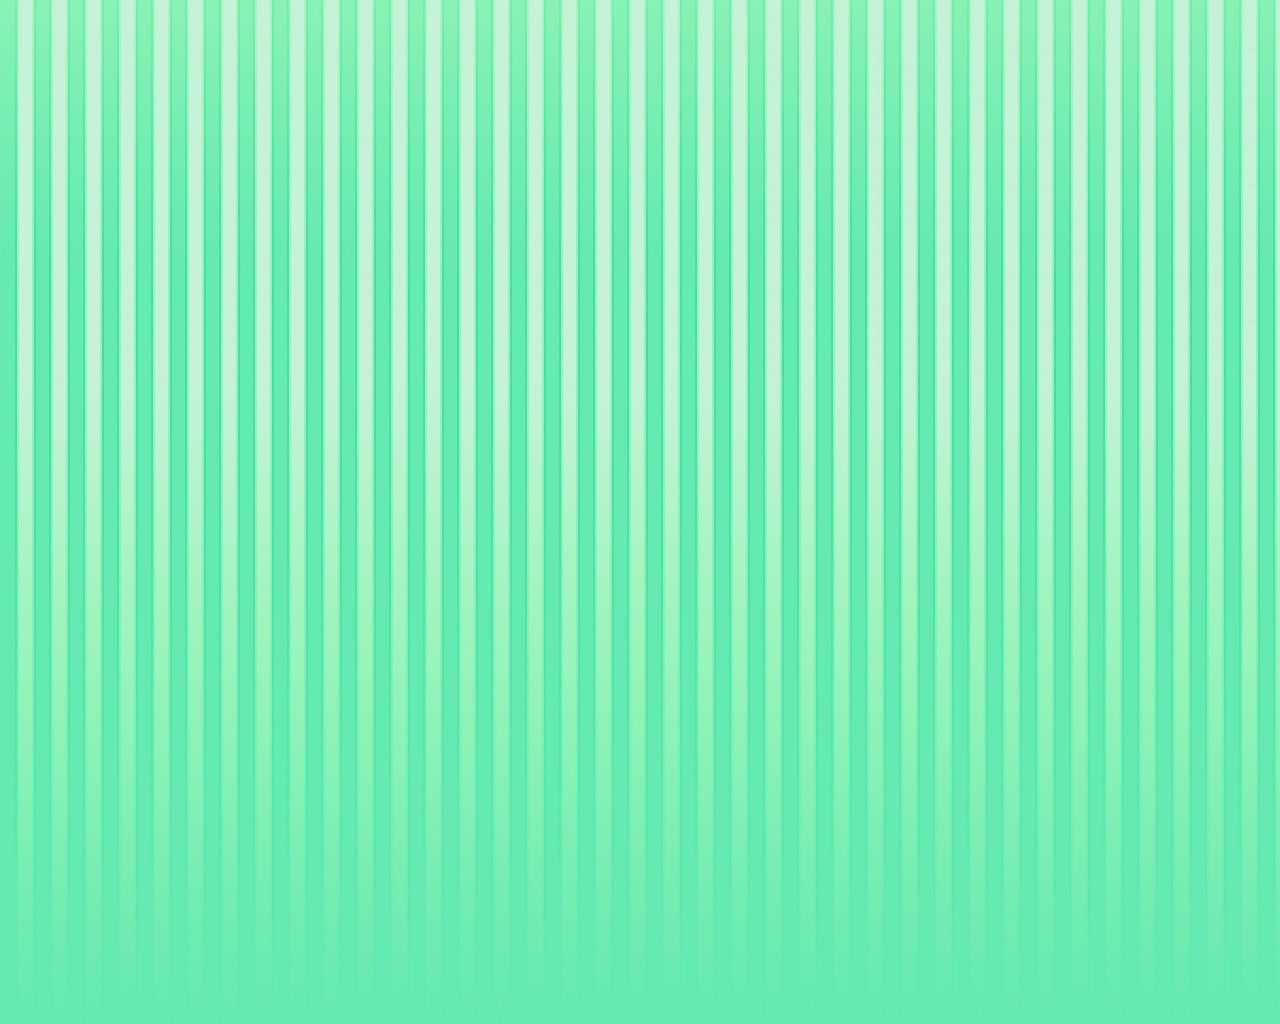 Sh Yn Design Stripe Wallpaper Pale green Stripe 1280x1024